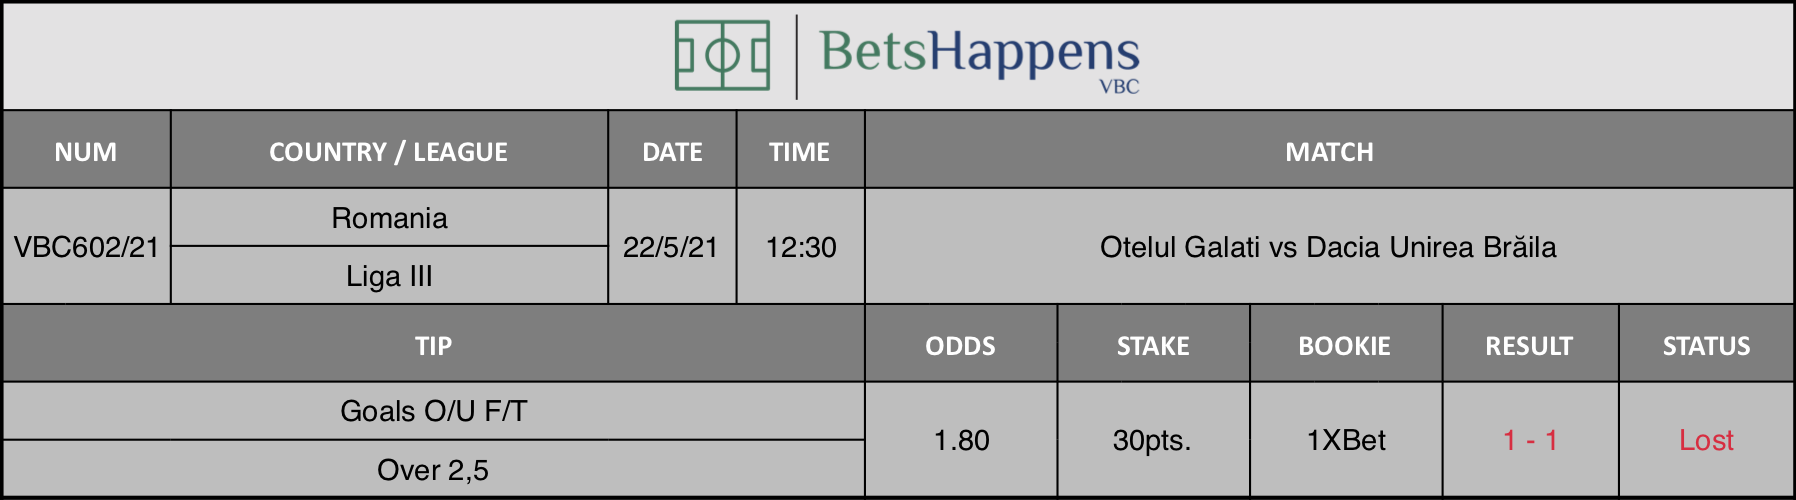 Results of our tip for the Otelul Galati vs Dacia Unirea Brăila match where Goals O/U F/T Over 2,5 is recommended.